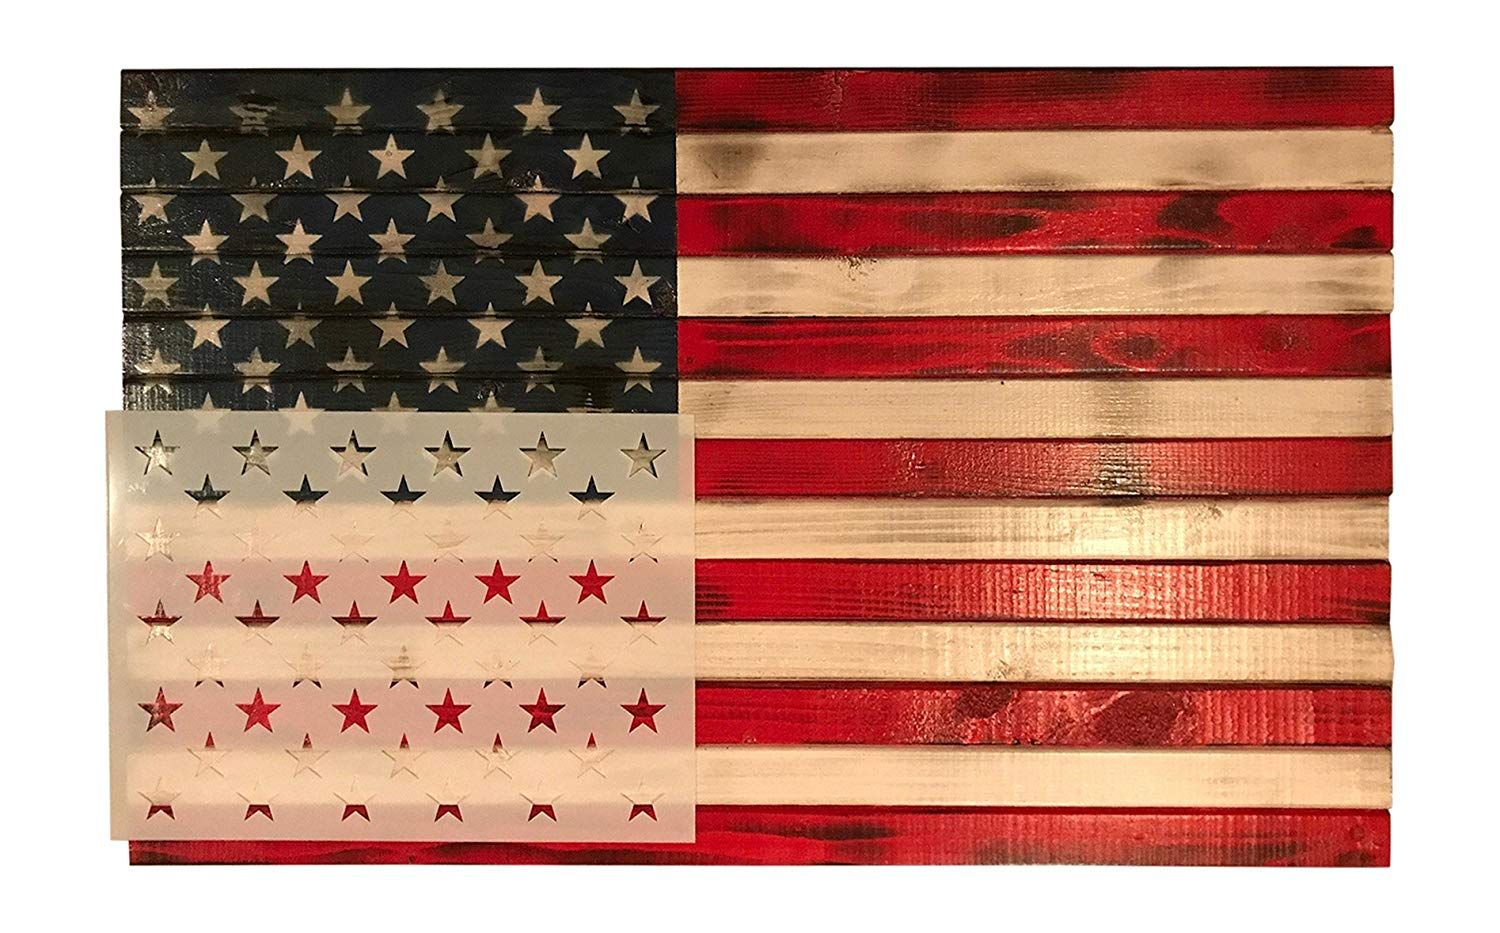 Amazon Com 50 Star Stencil Template 10 5 X 15 Actual Size 10 5 X 14 82 For Making Wood American Flags And W American Flag Wood Stencil Template Star Stencil